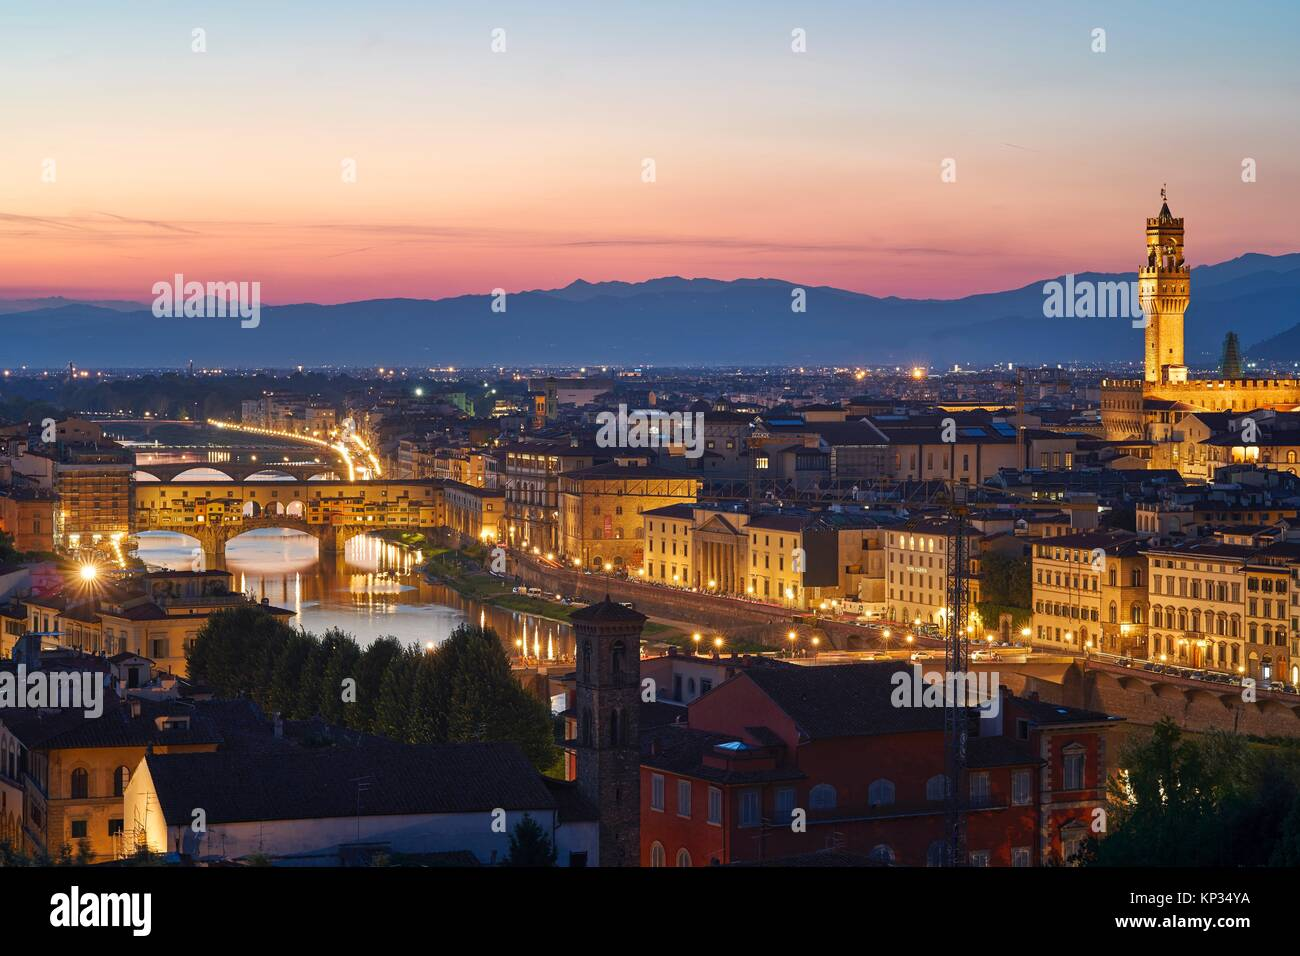 Florence cityscape at sunset with Palazzo Vecchio (old Palace) and the river Arno. Tuscany, Italy - Stock Image